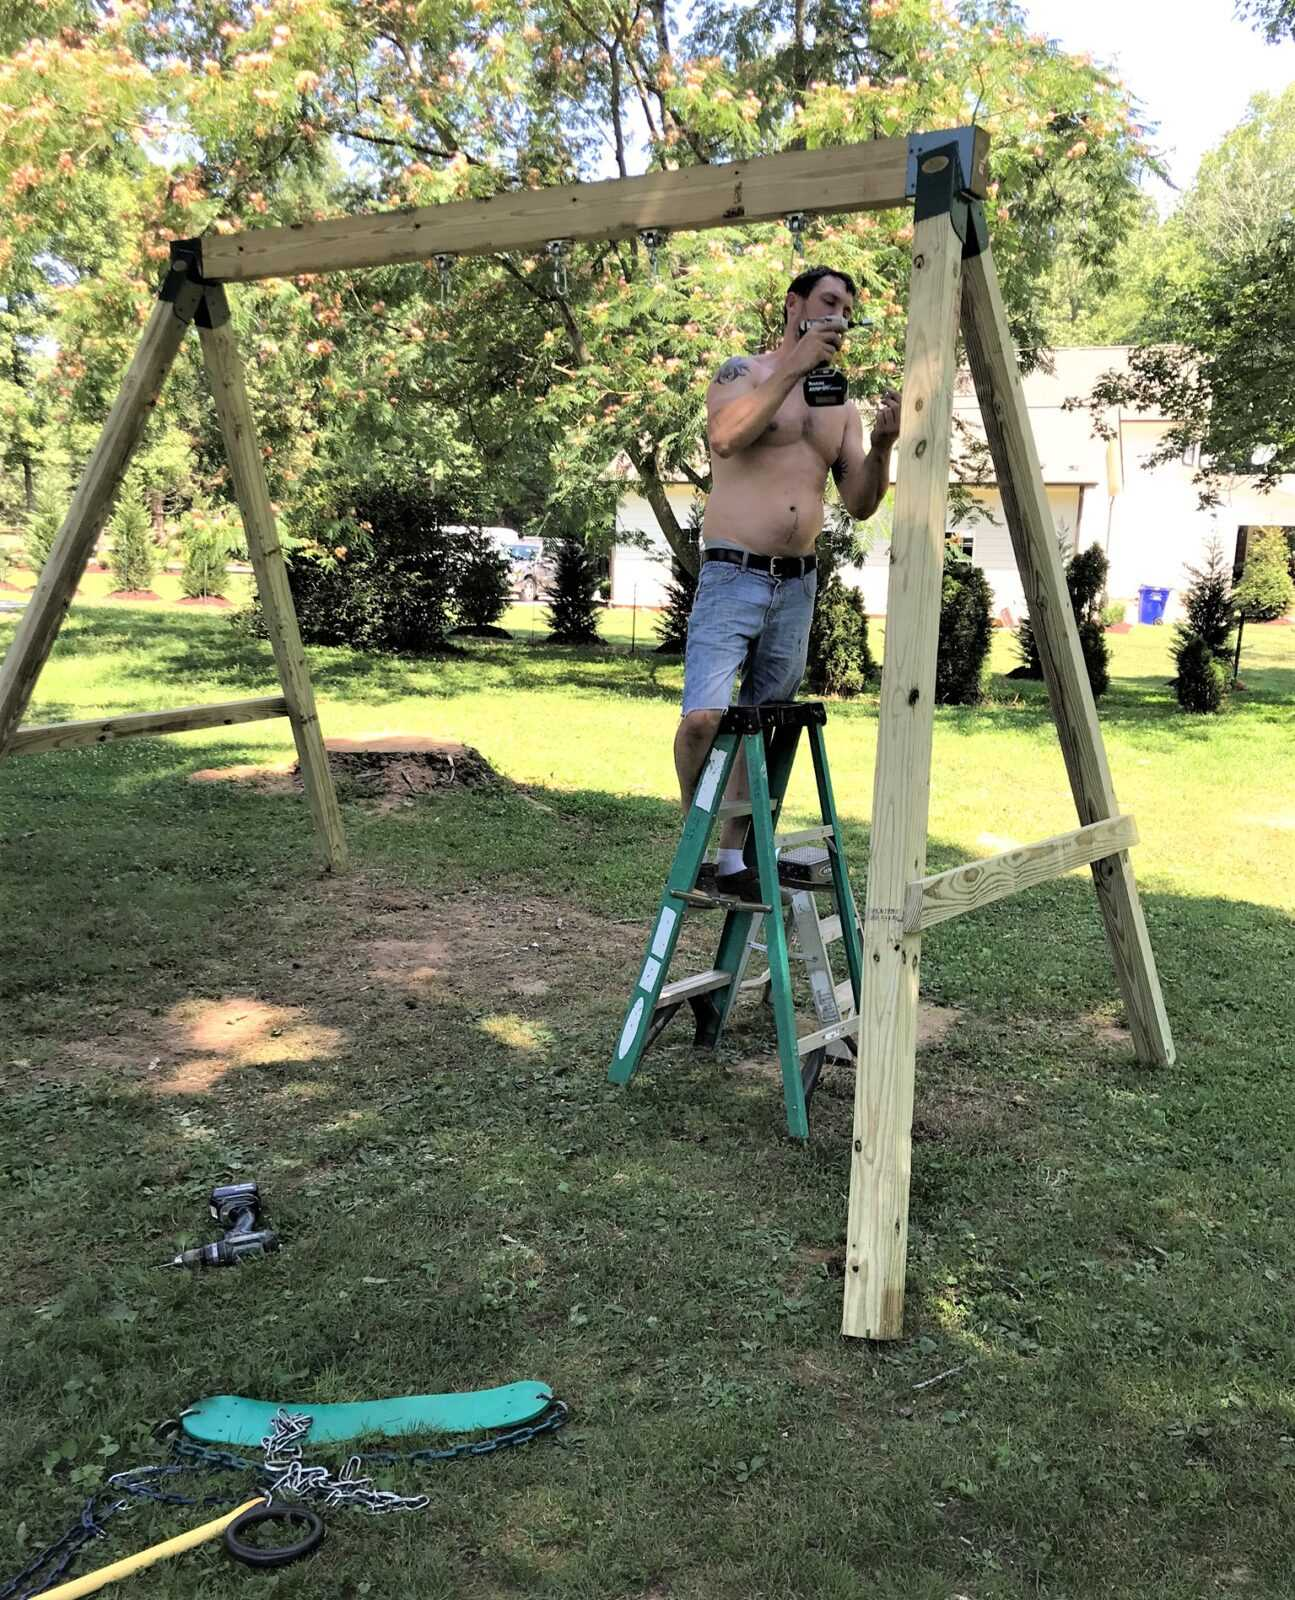 man with drill assembling swing set